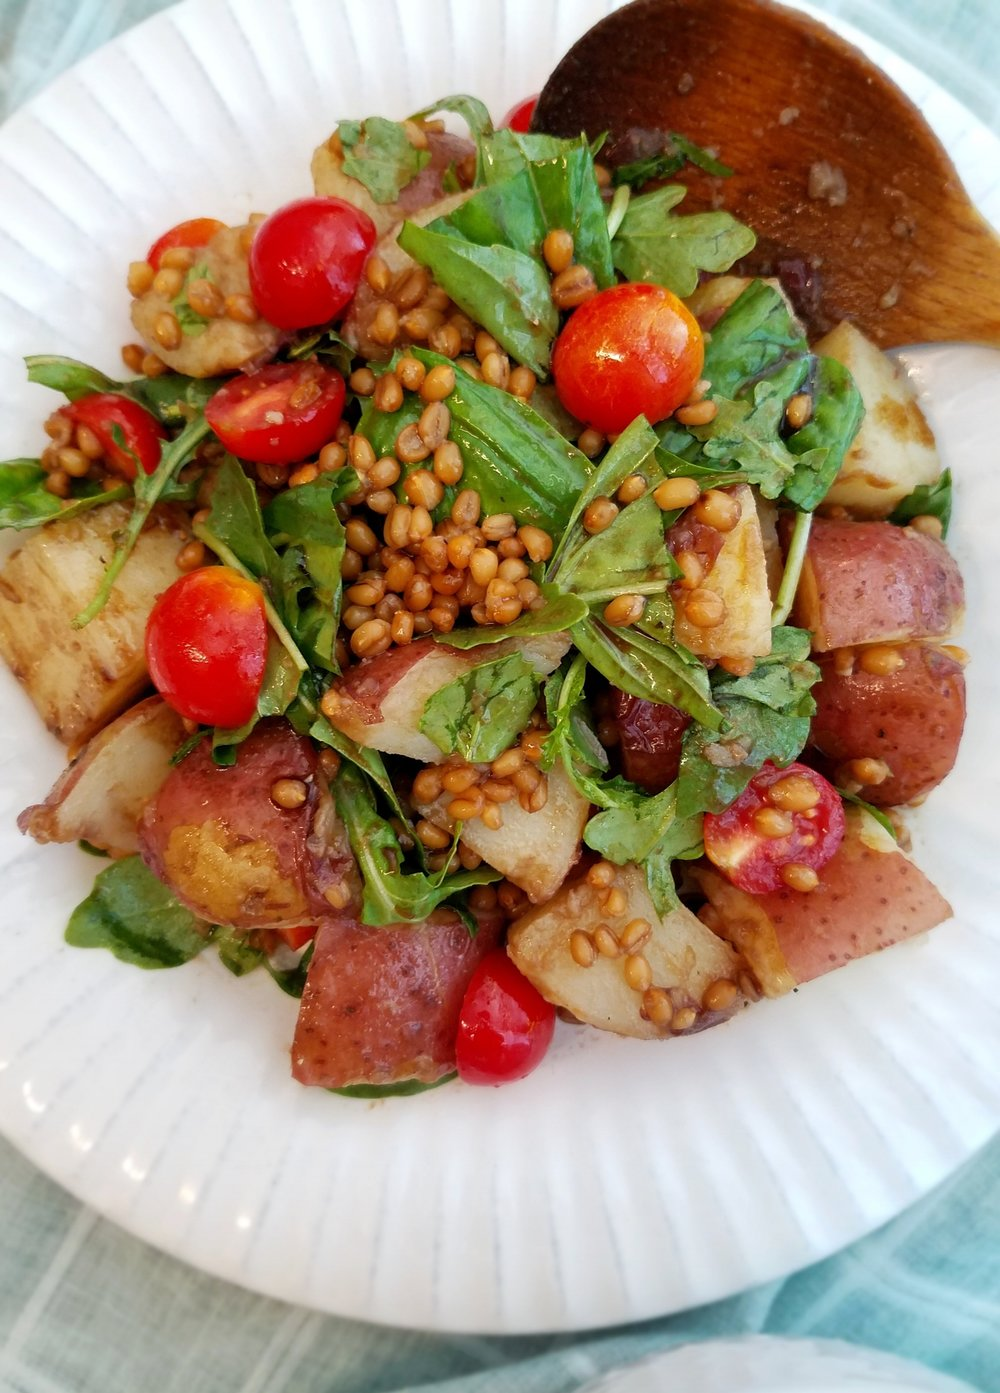 Balsamic Potato Salad with Fresh Basil, Cherry Tomatoes and Wheat Berries